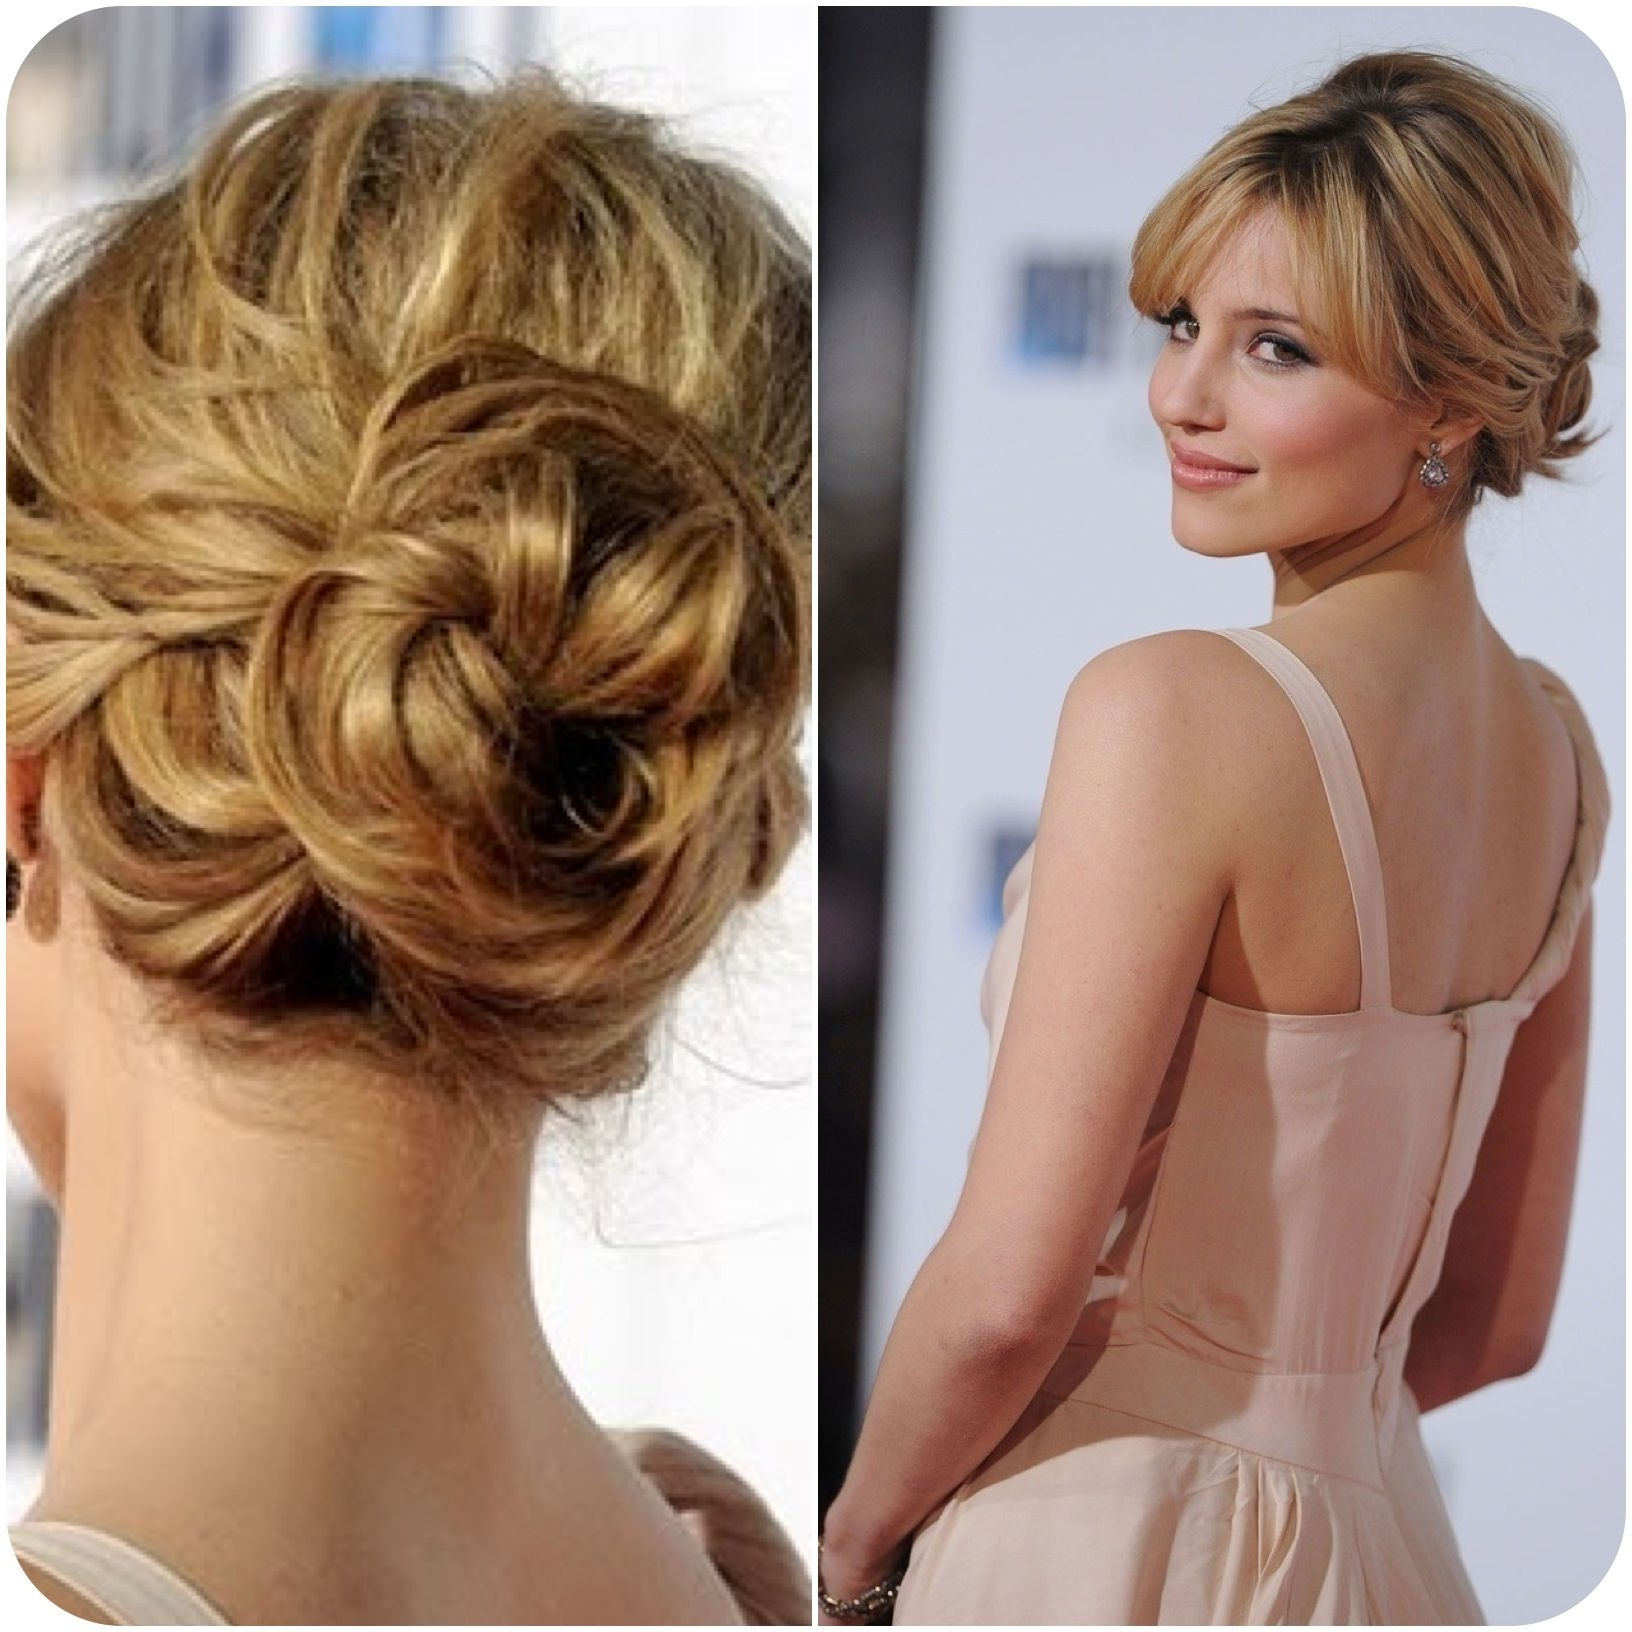 Dianna Agron Romantic Updo With Bangs | Hair | Pinterest | Dianna Throughout Romantic Updo Hairstyles (View 5 of 15)